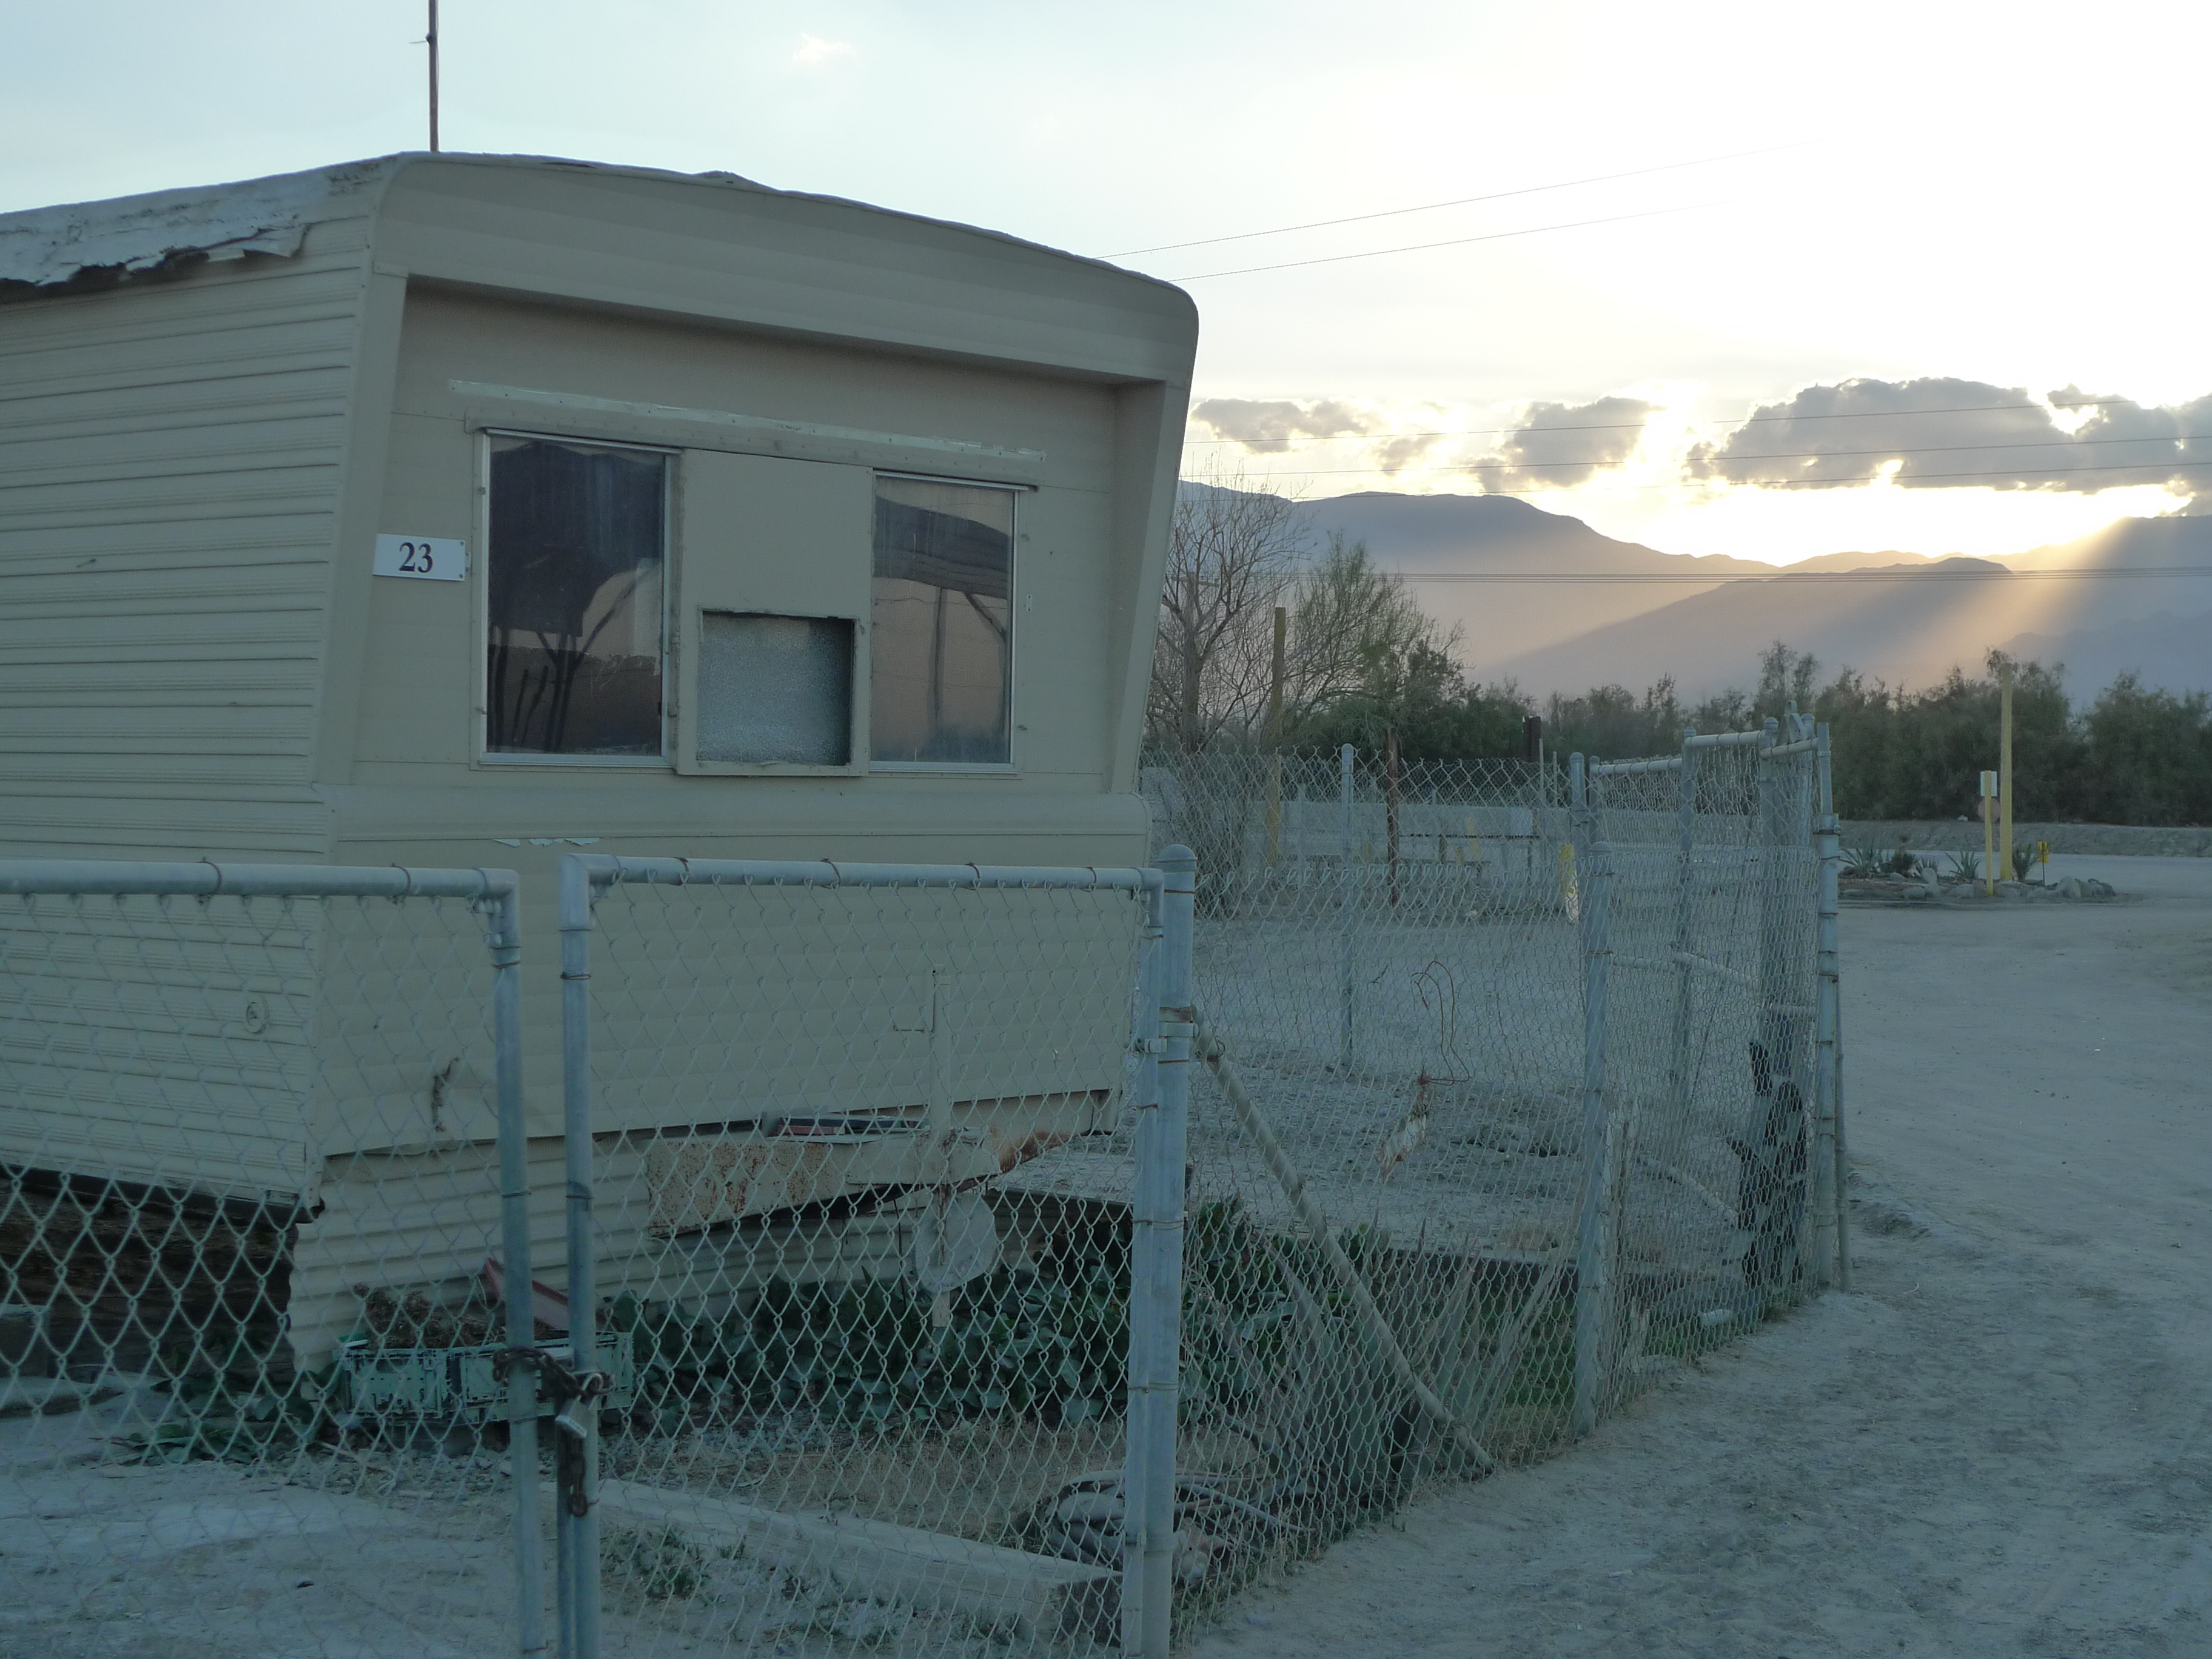 Caption: Mobile home park in Eastern Coachella., Credit: Lisa Morehouse